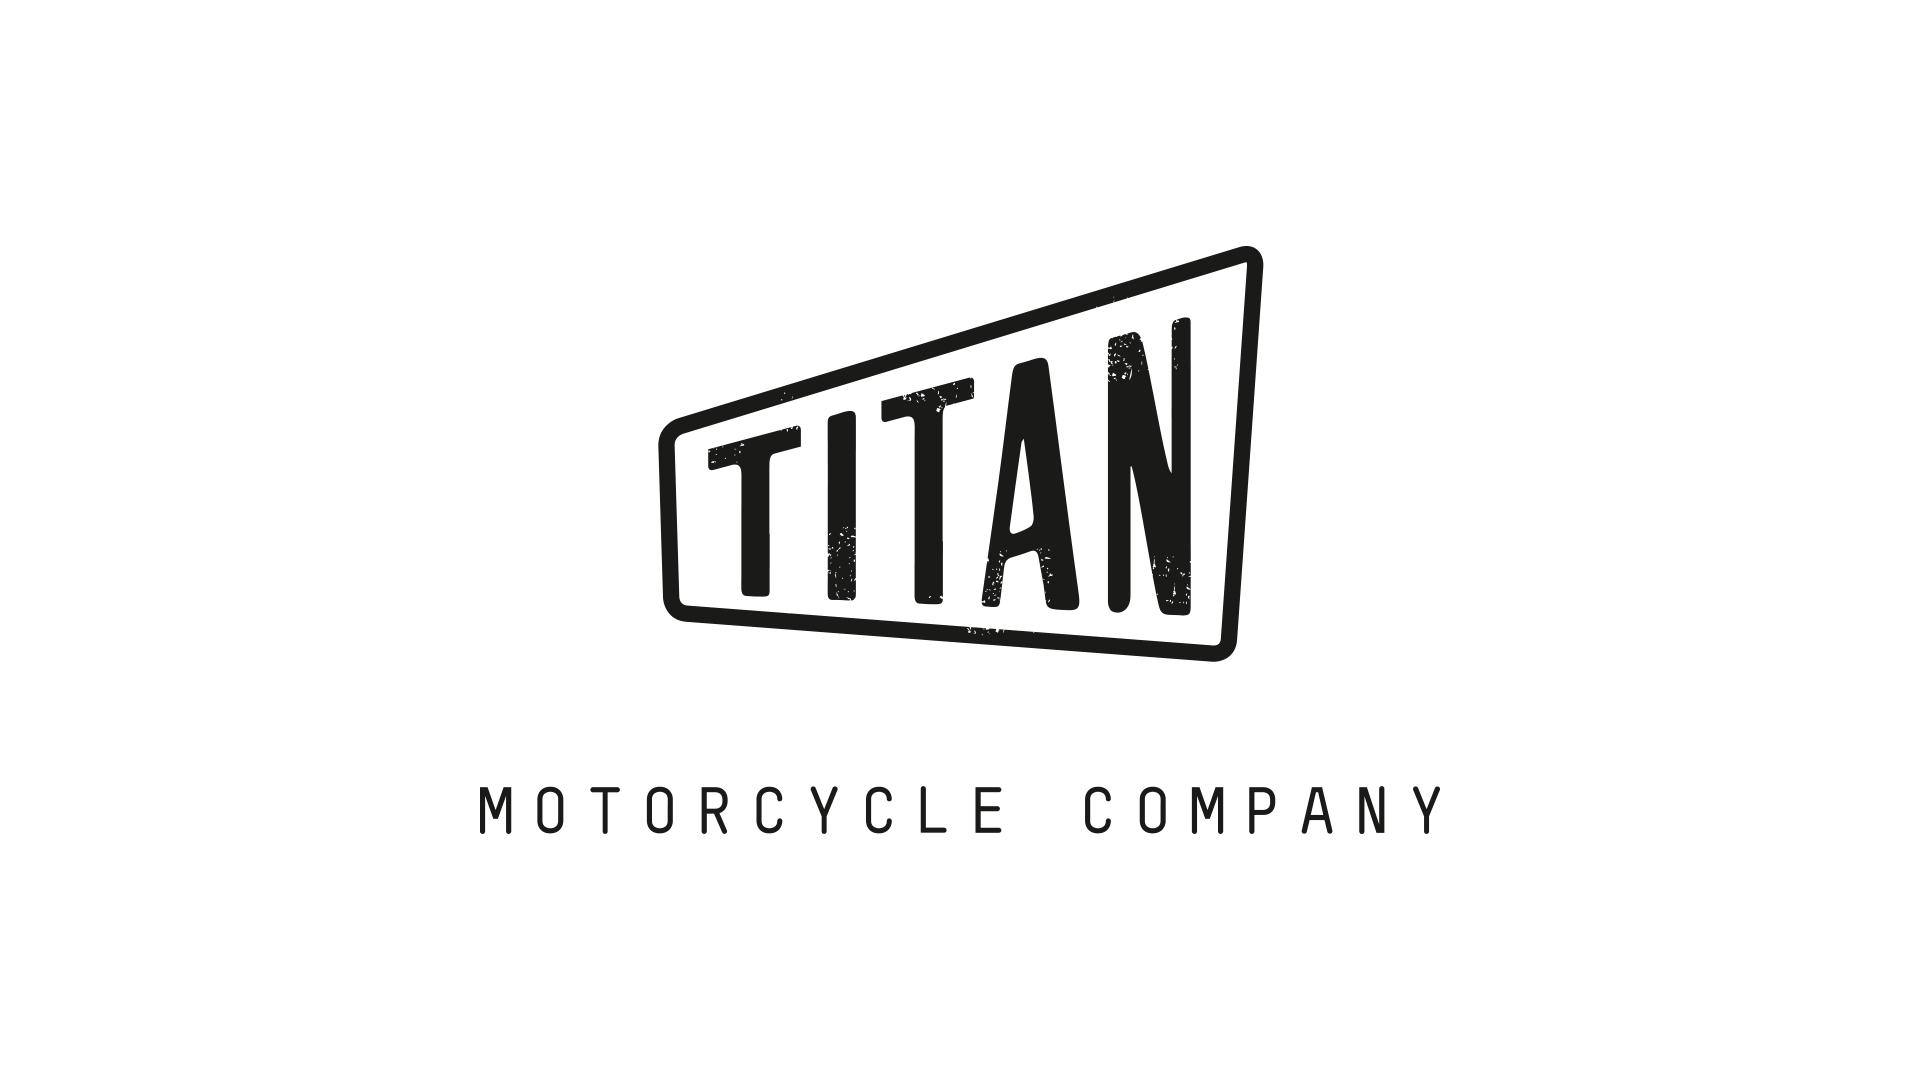 Titan Motorcycles Corporatedesign Logoentwicklung